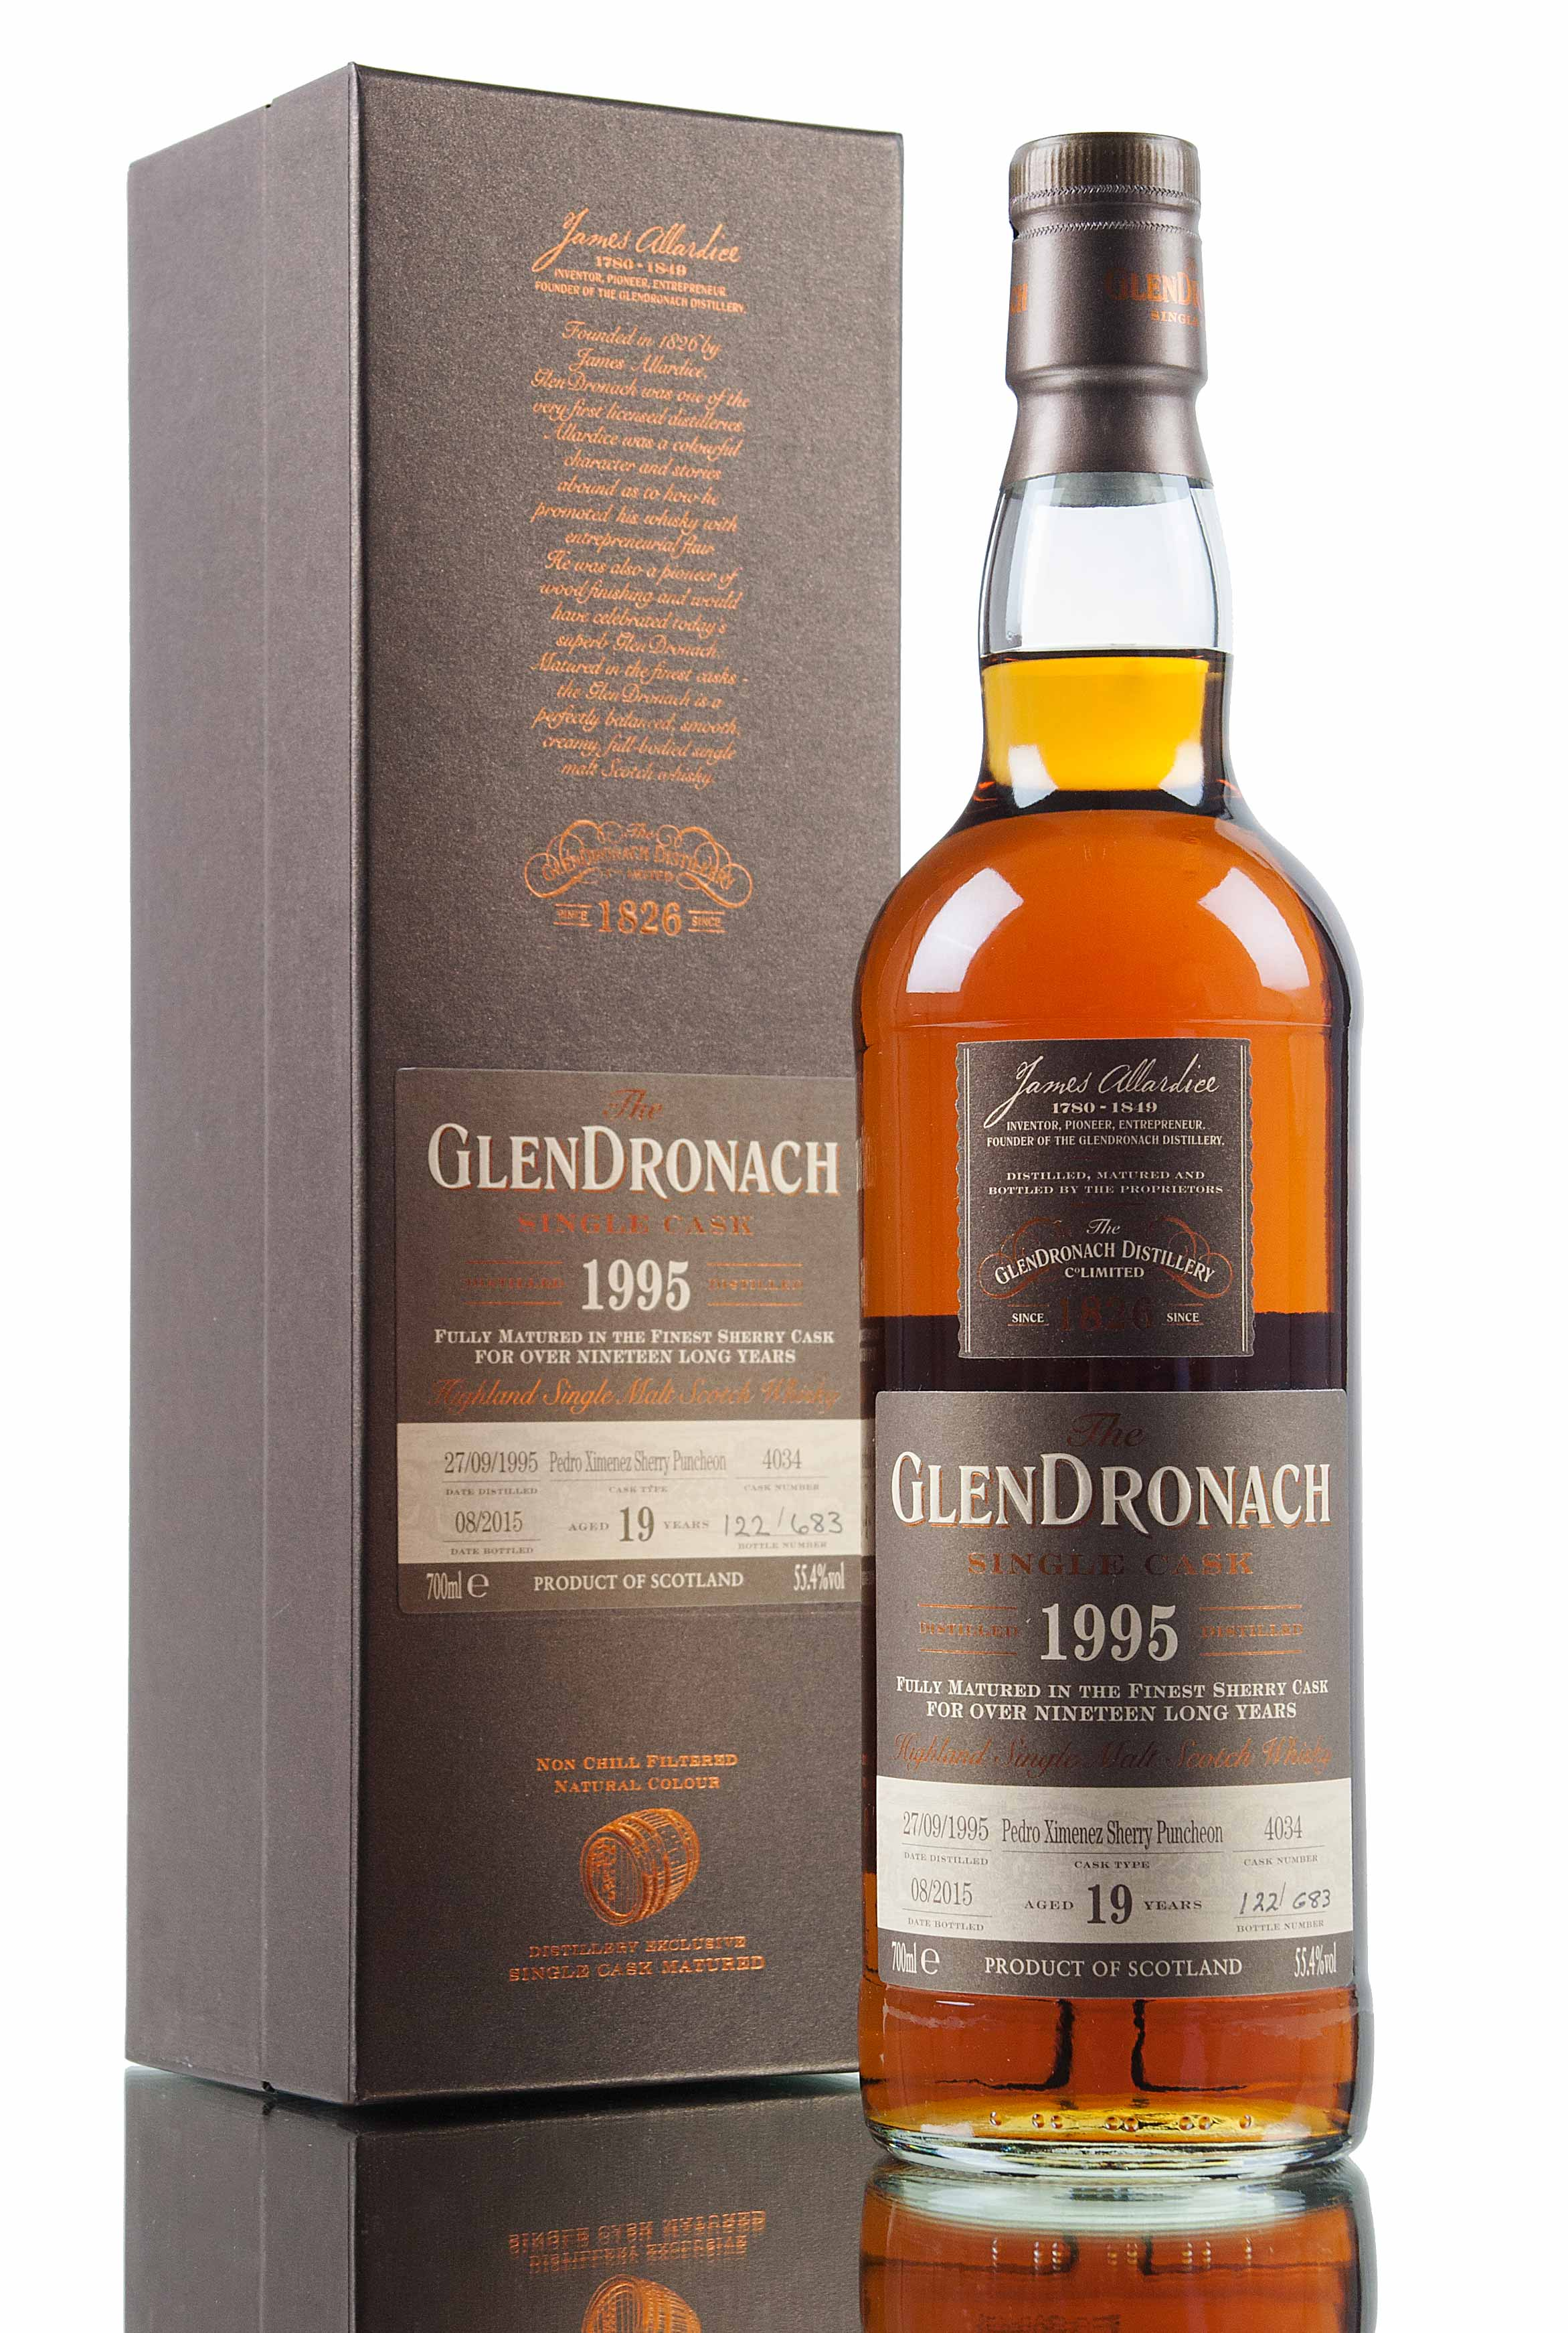 GlenDronach 1995 19 Year Old Cask 4034 / Batch 12